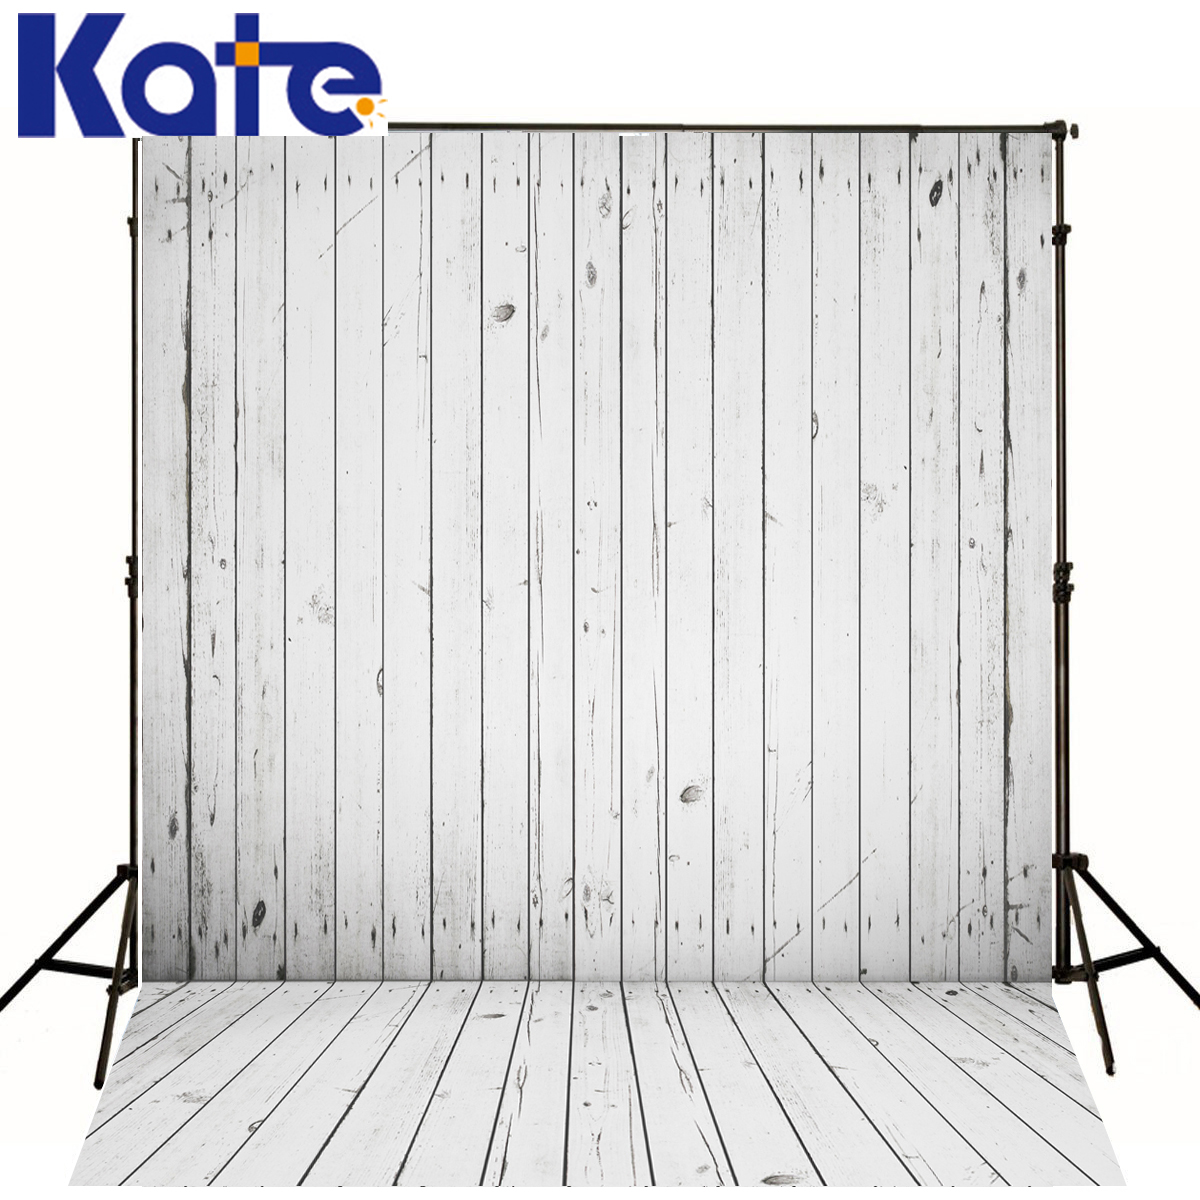 200*150Cm(6.5*5Ft)Kate Photography Backdrops Fresh And Simple White Wall Background Brick Wall Backdrop Background Backdrop<br>